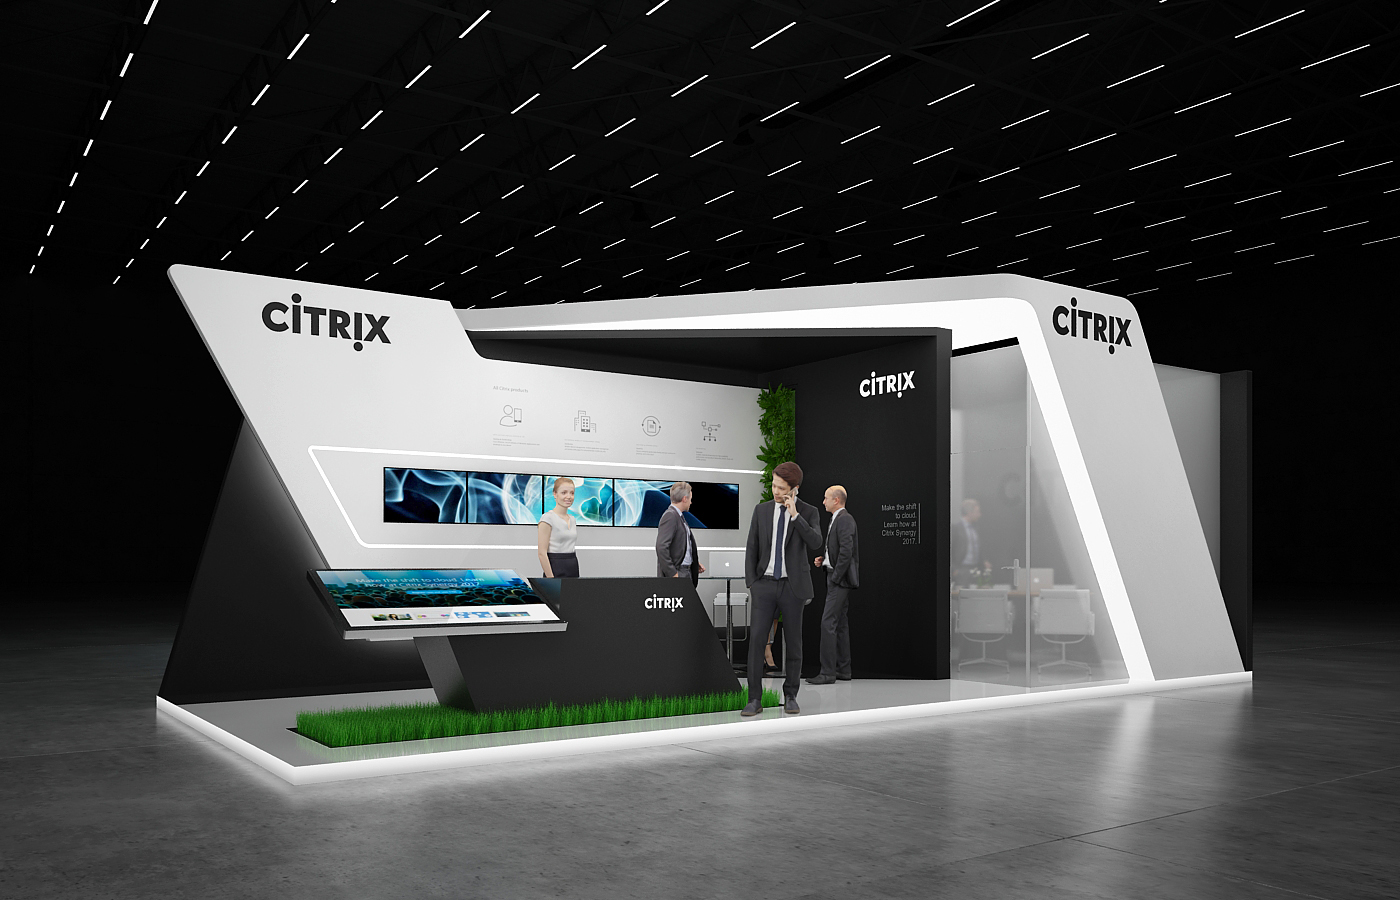 Exhibition Stall On Behance : Citrix exhibition stand on behance